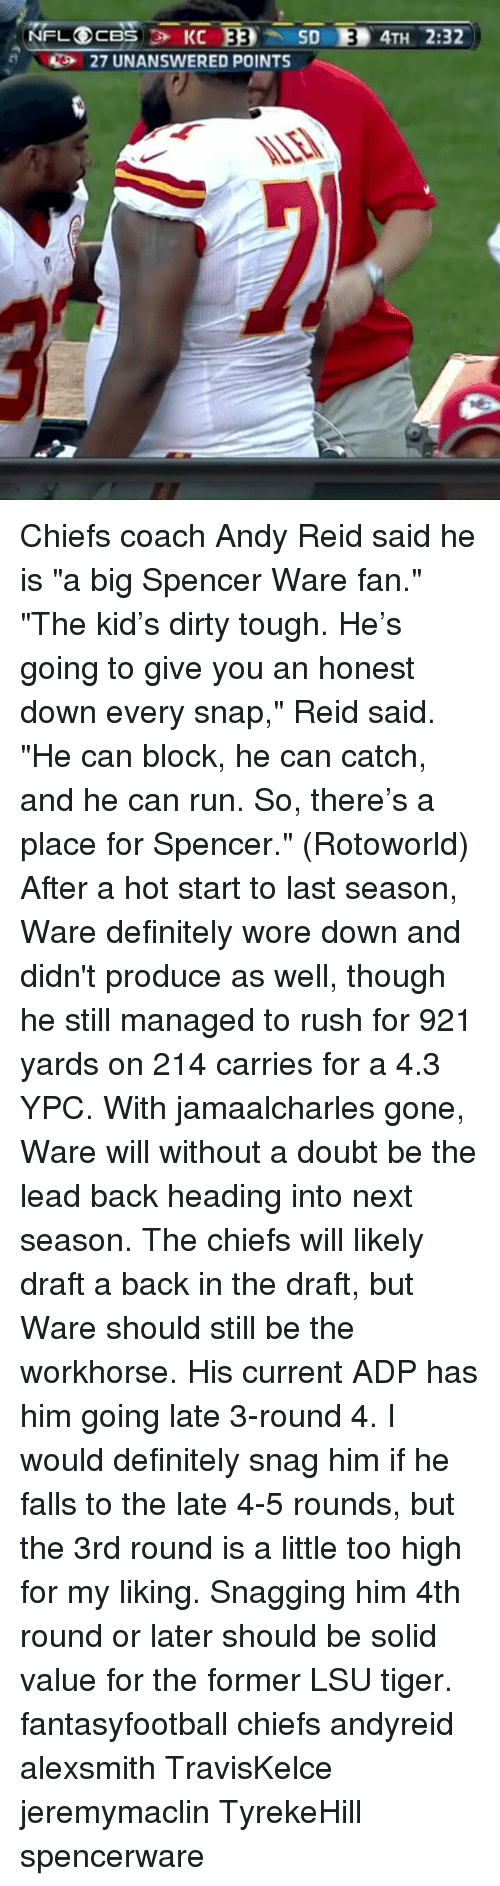 "lsu tigers: NFL CBS KC  EEO  SD LED 4TH 2:32  AS 27 UNANSWERED POINTS Chiefs coach Andy Reid said he is ""a big Spencer Ware fan."" ""The kid's dirty tough. He's going to give you an honest down every snap,"" Reid said. ""He can block, he can catch, and he can run. So, there's a place for Spencer."" (Rotoworld) After a hot start to last season, Ware definitely wore down and didn't produce as well, though he still managed to rush for 921 yards on 214 carries for a 4.3 YPC. With jamaalcharles gone, Ware will without a doubt be the lead back heading into next season. The chiefs will likely draft a back in the draft, but Ware should still be the workhorse. His current ADP has him going late 3-round 4. I would definitely snag him if he falls to the late 4-5 rounds, but the 3rd round is a little too high for my liking. Snagging him 4th round or later should be solid value for the former LSU tiger. fantasyfootball chiefs andyreid alexsmith TravisKelce jeremymaclin TyrekeHill spencerware"